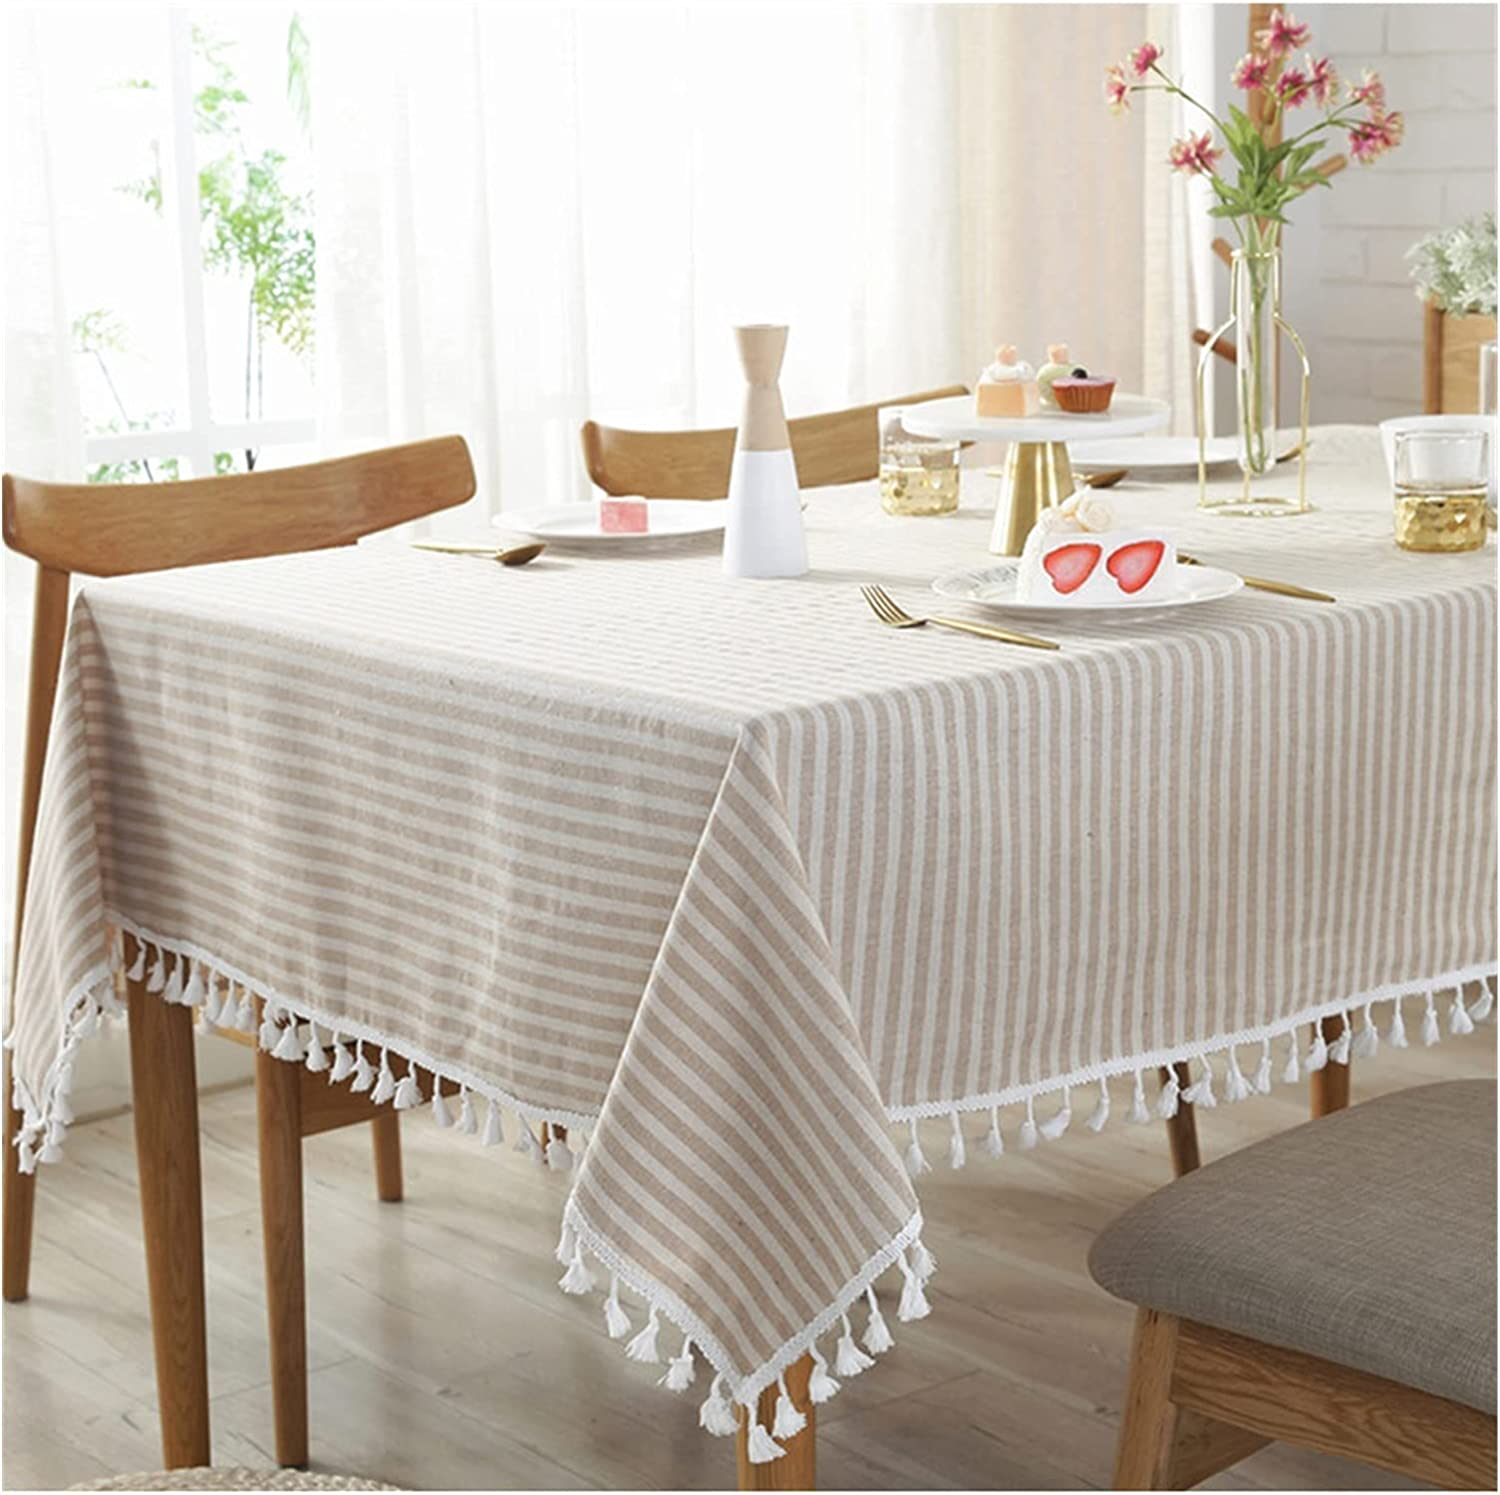 Luxury Hair Drying Towels Red and white striped cloth decorative Discount mail order linen